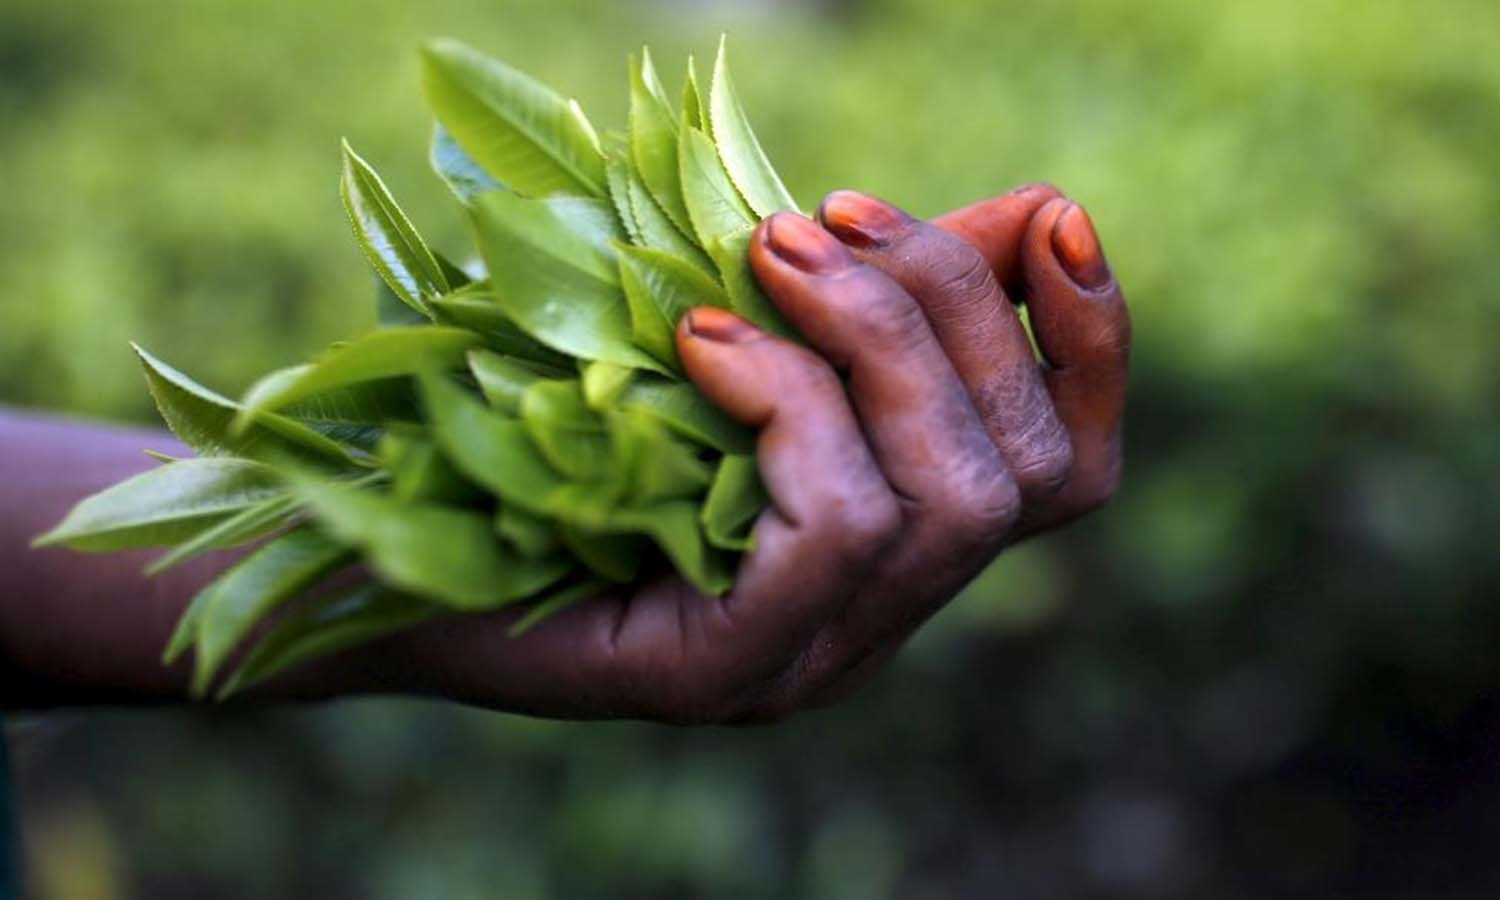 Freshly plucked tea leaves are seen in the hand of a tea garden worker inside Aideobarie Tea Estate in Jorhat in Assam. — Reuters